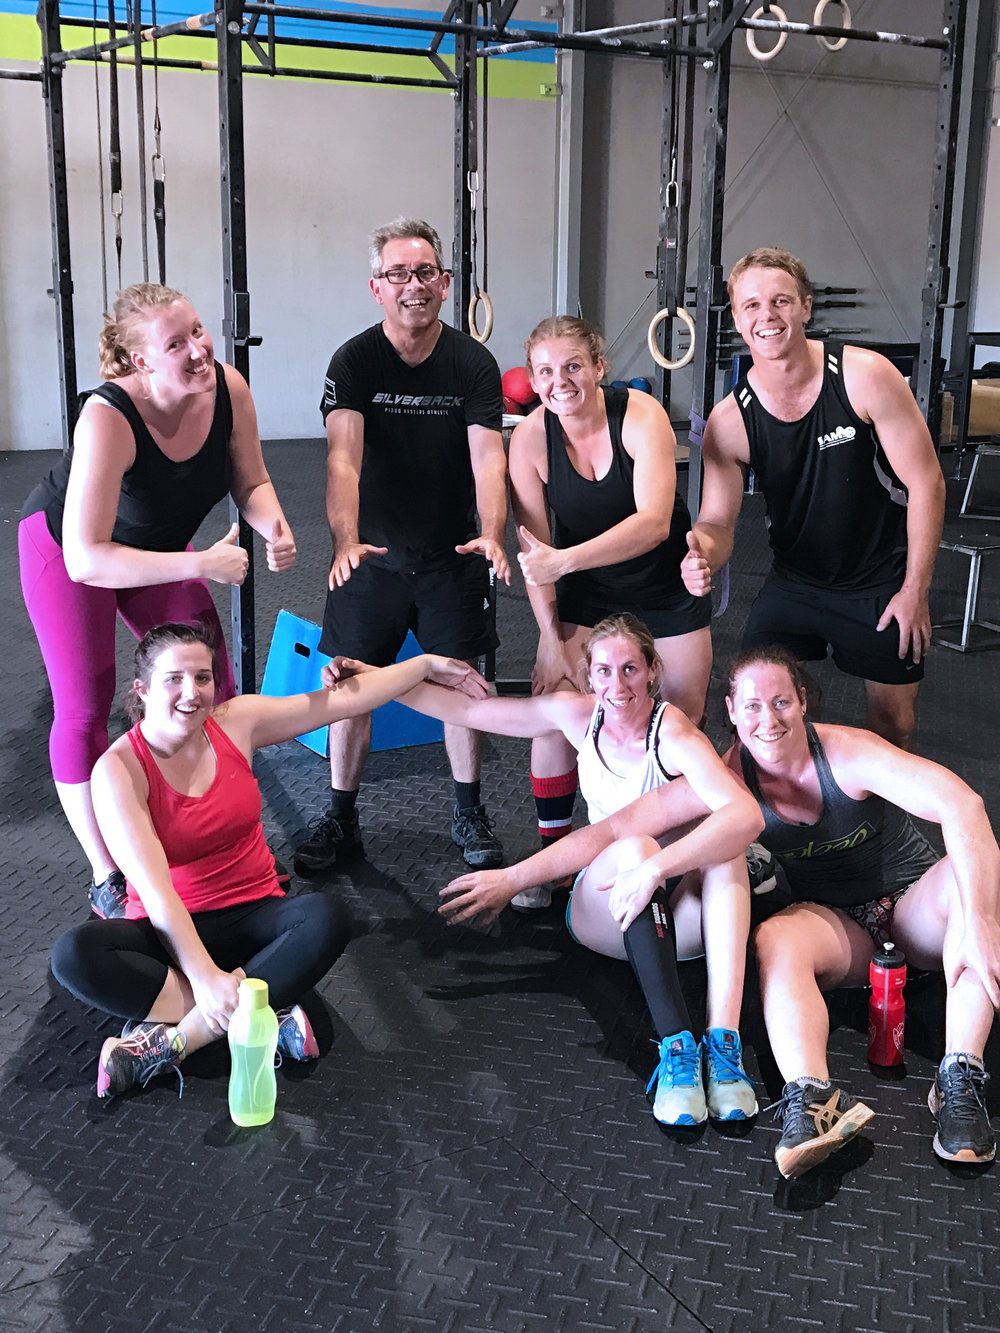 join the crossfit dubbo family - Learn how to use constantly varied, functional movements performed at high intensity to meet all of your fitness, sport or lifestyle goals - and have fun while you're doing it! Meet our community ➝